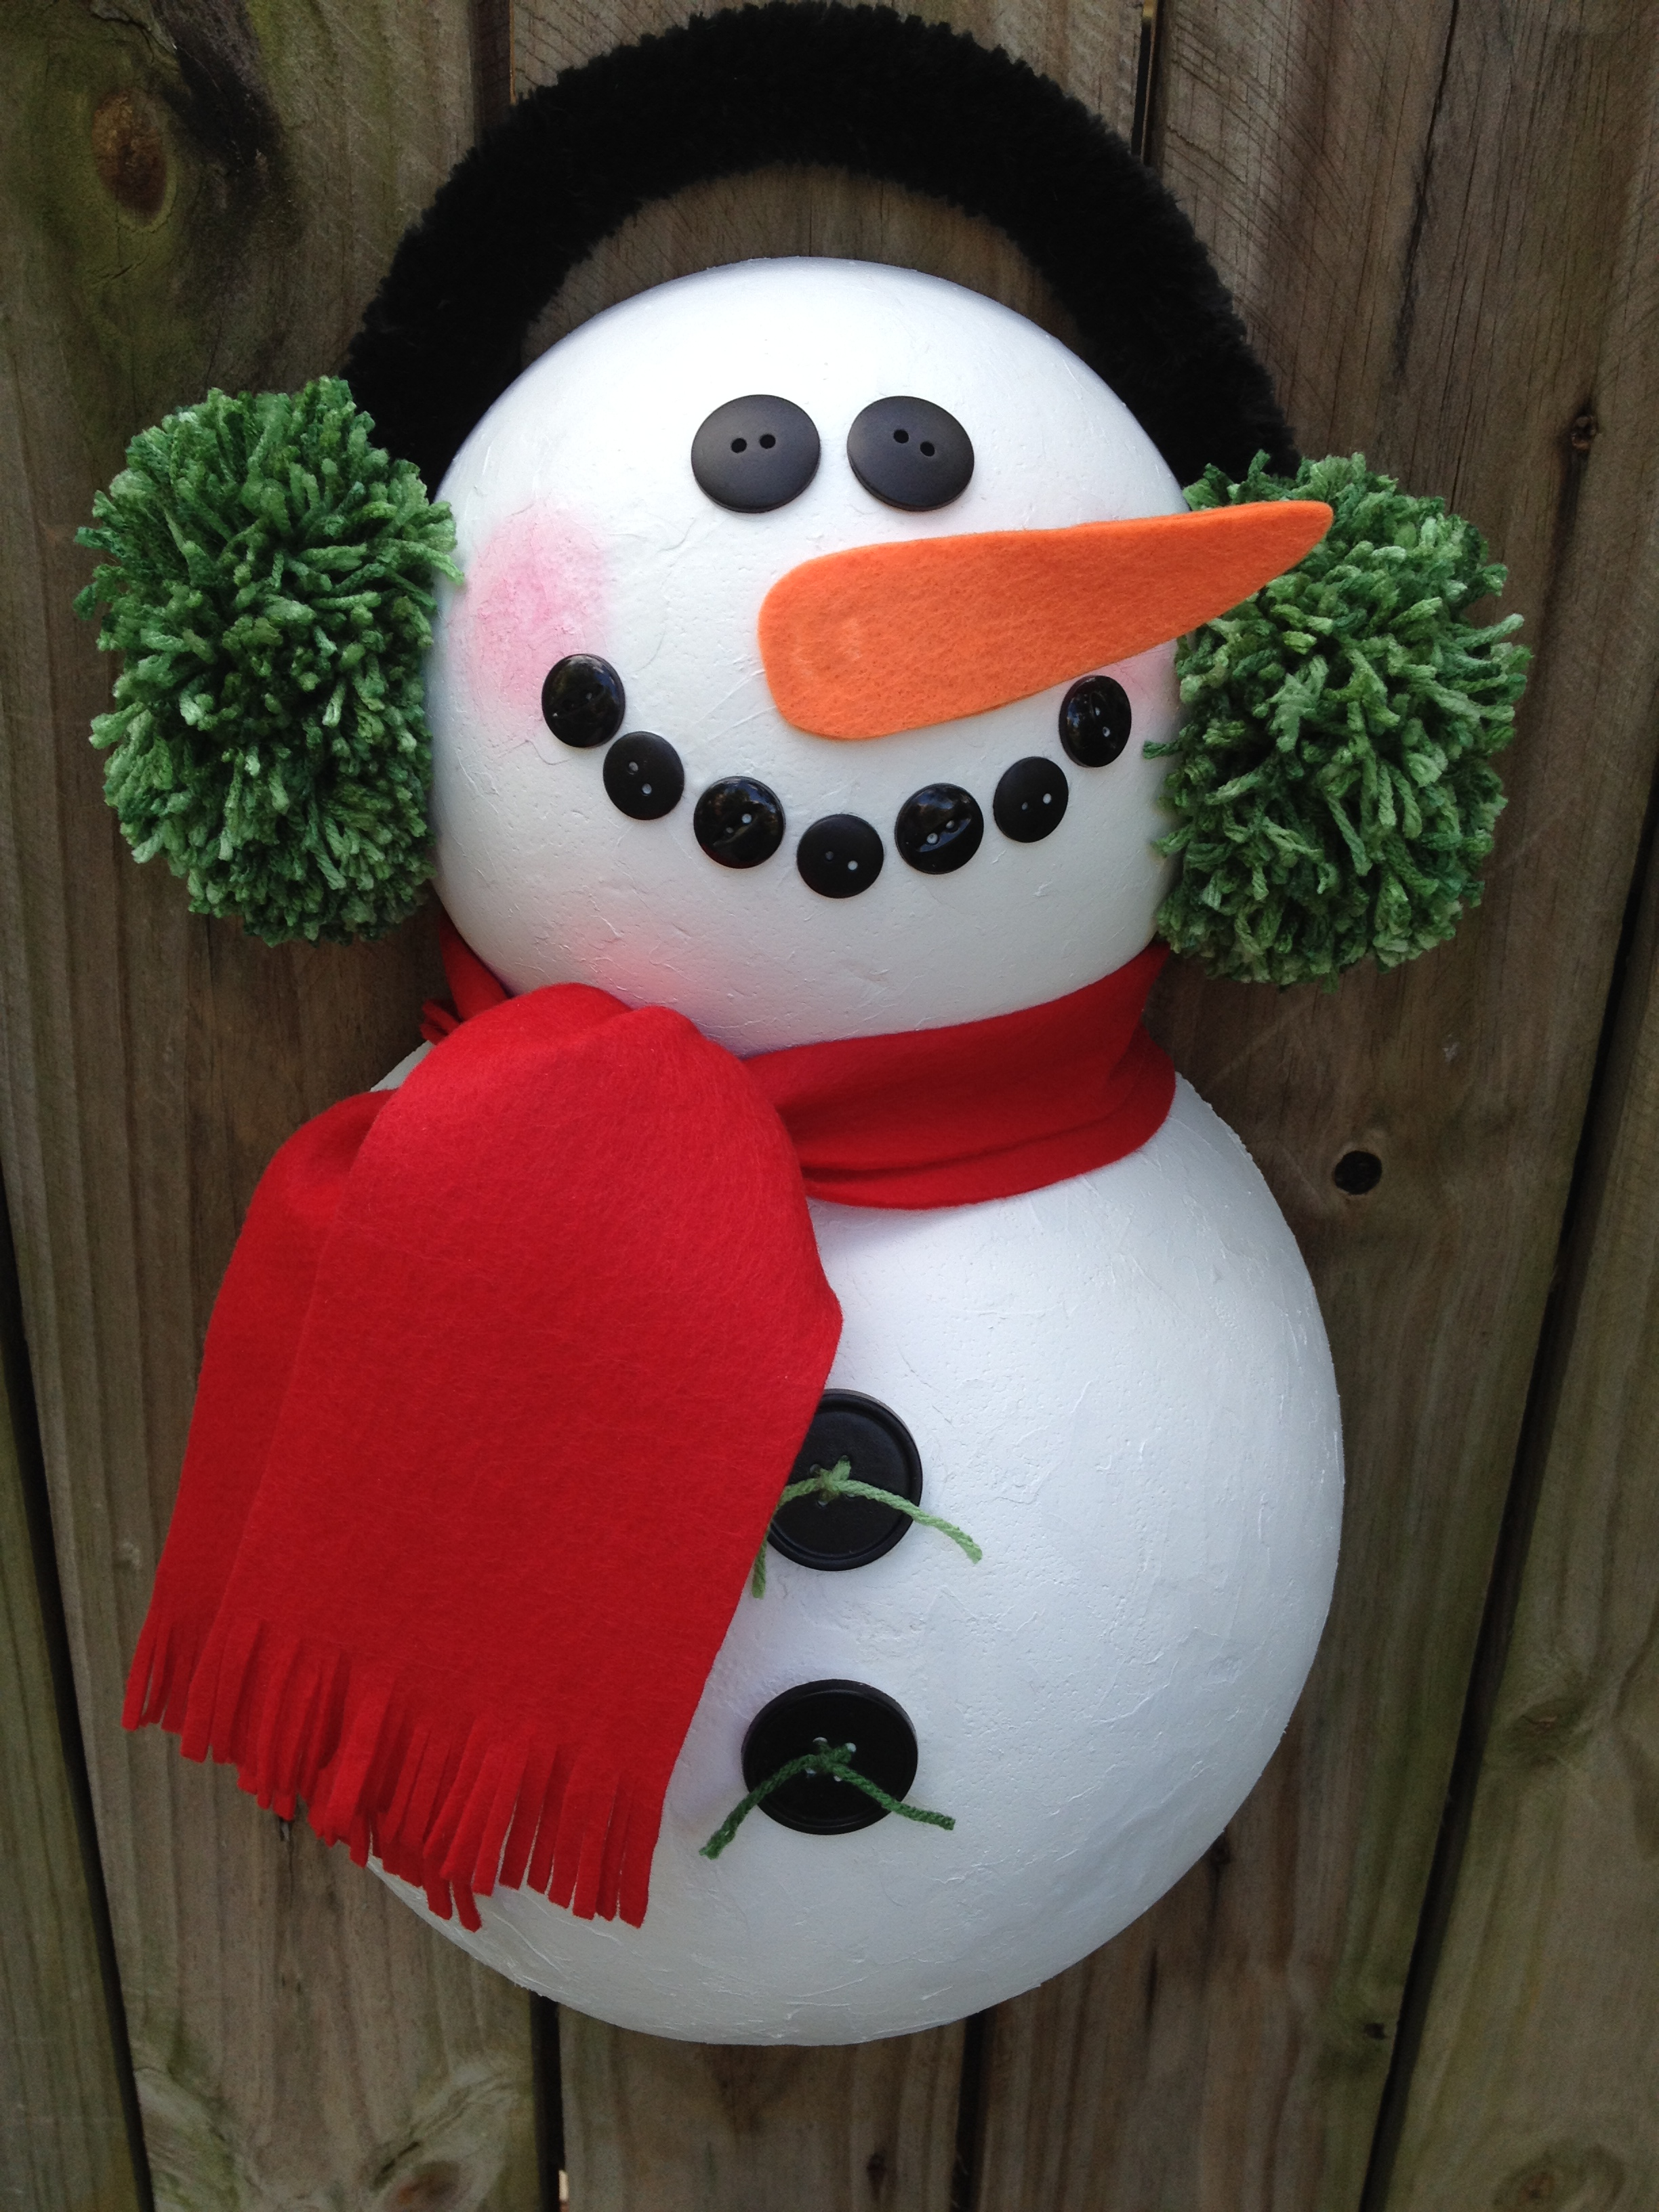 Snowman door hanger a festive and cheery change of pace from a